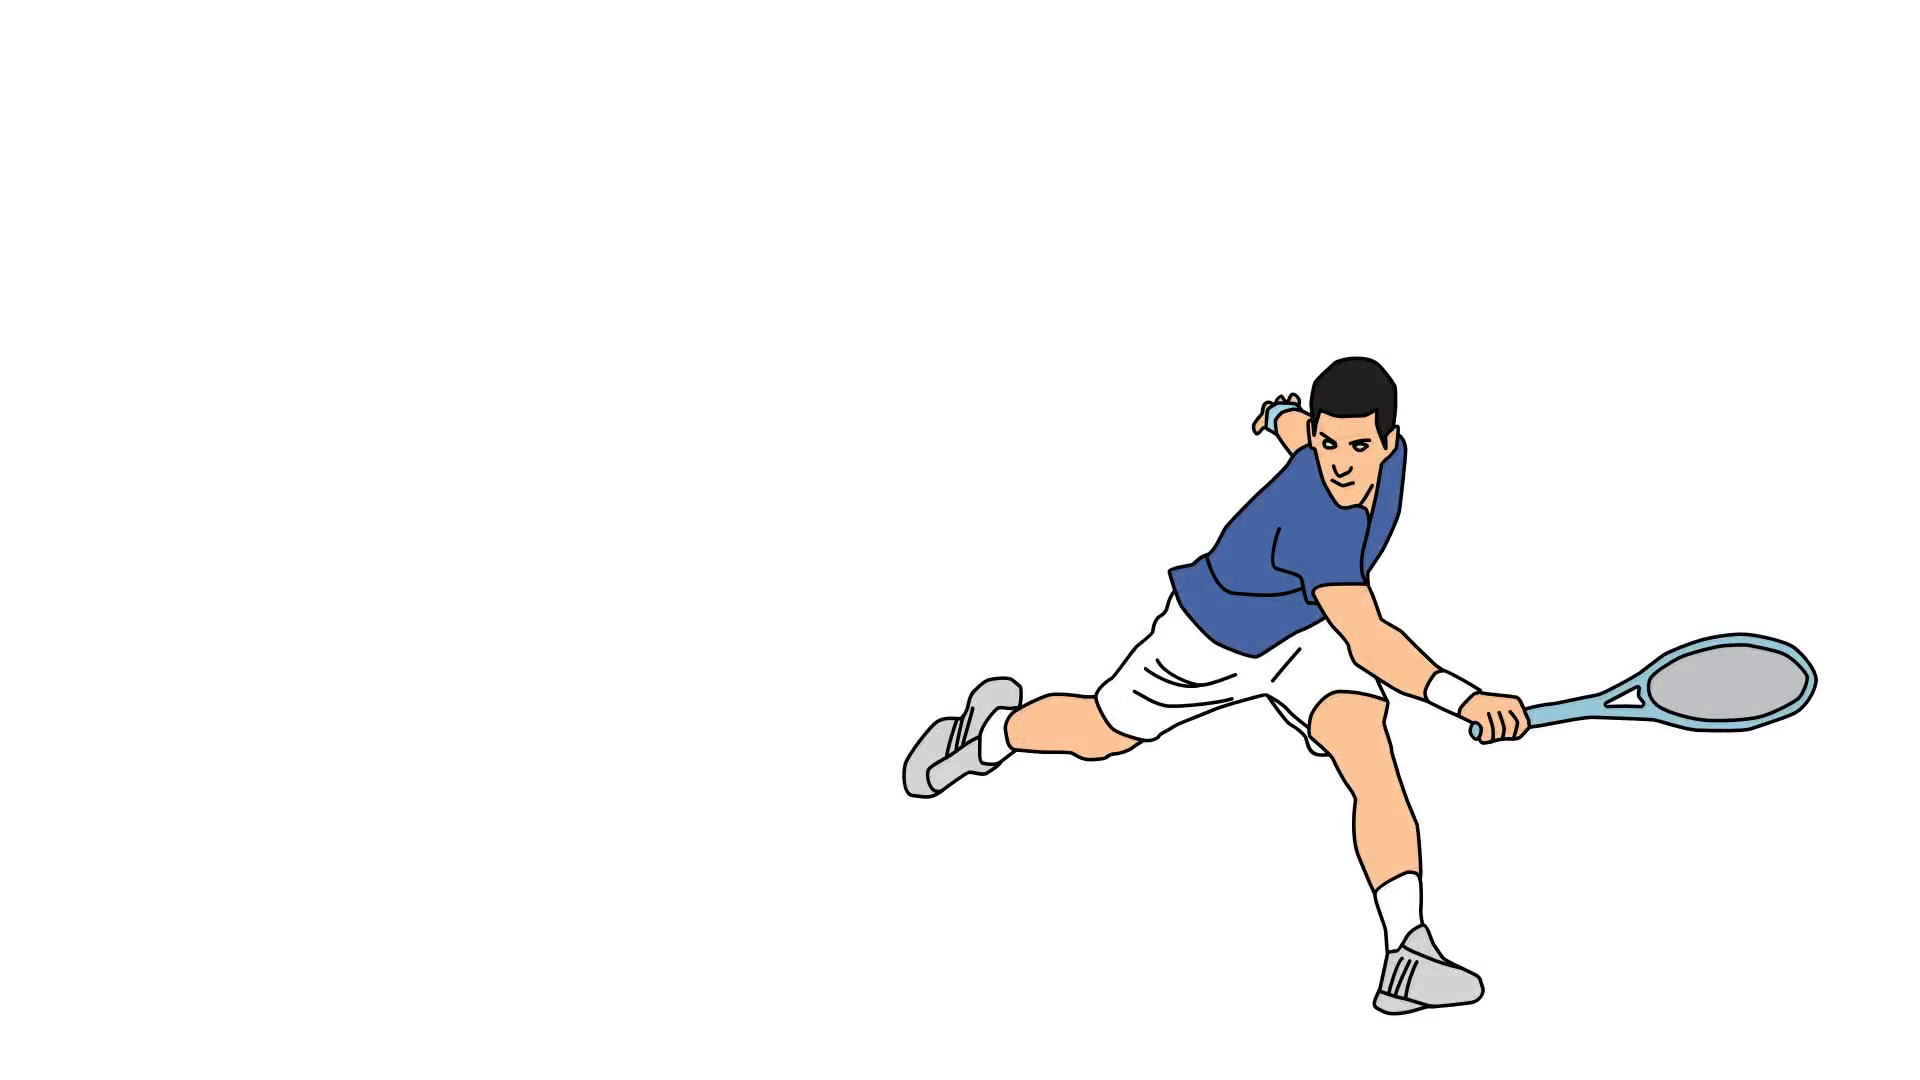 1920x1080 Animated Drawing Of Male Tennis Star Player Forehand Swing Follow